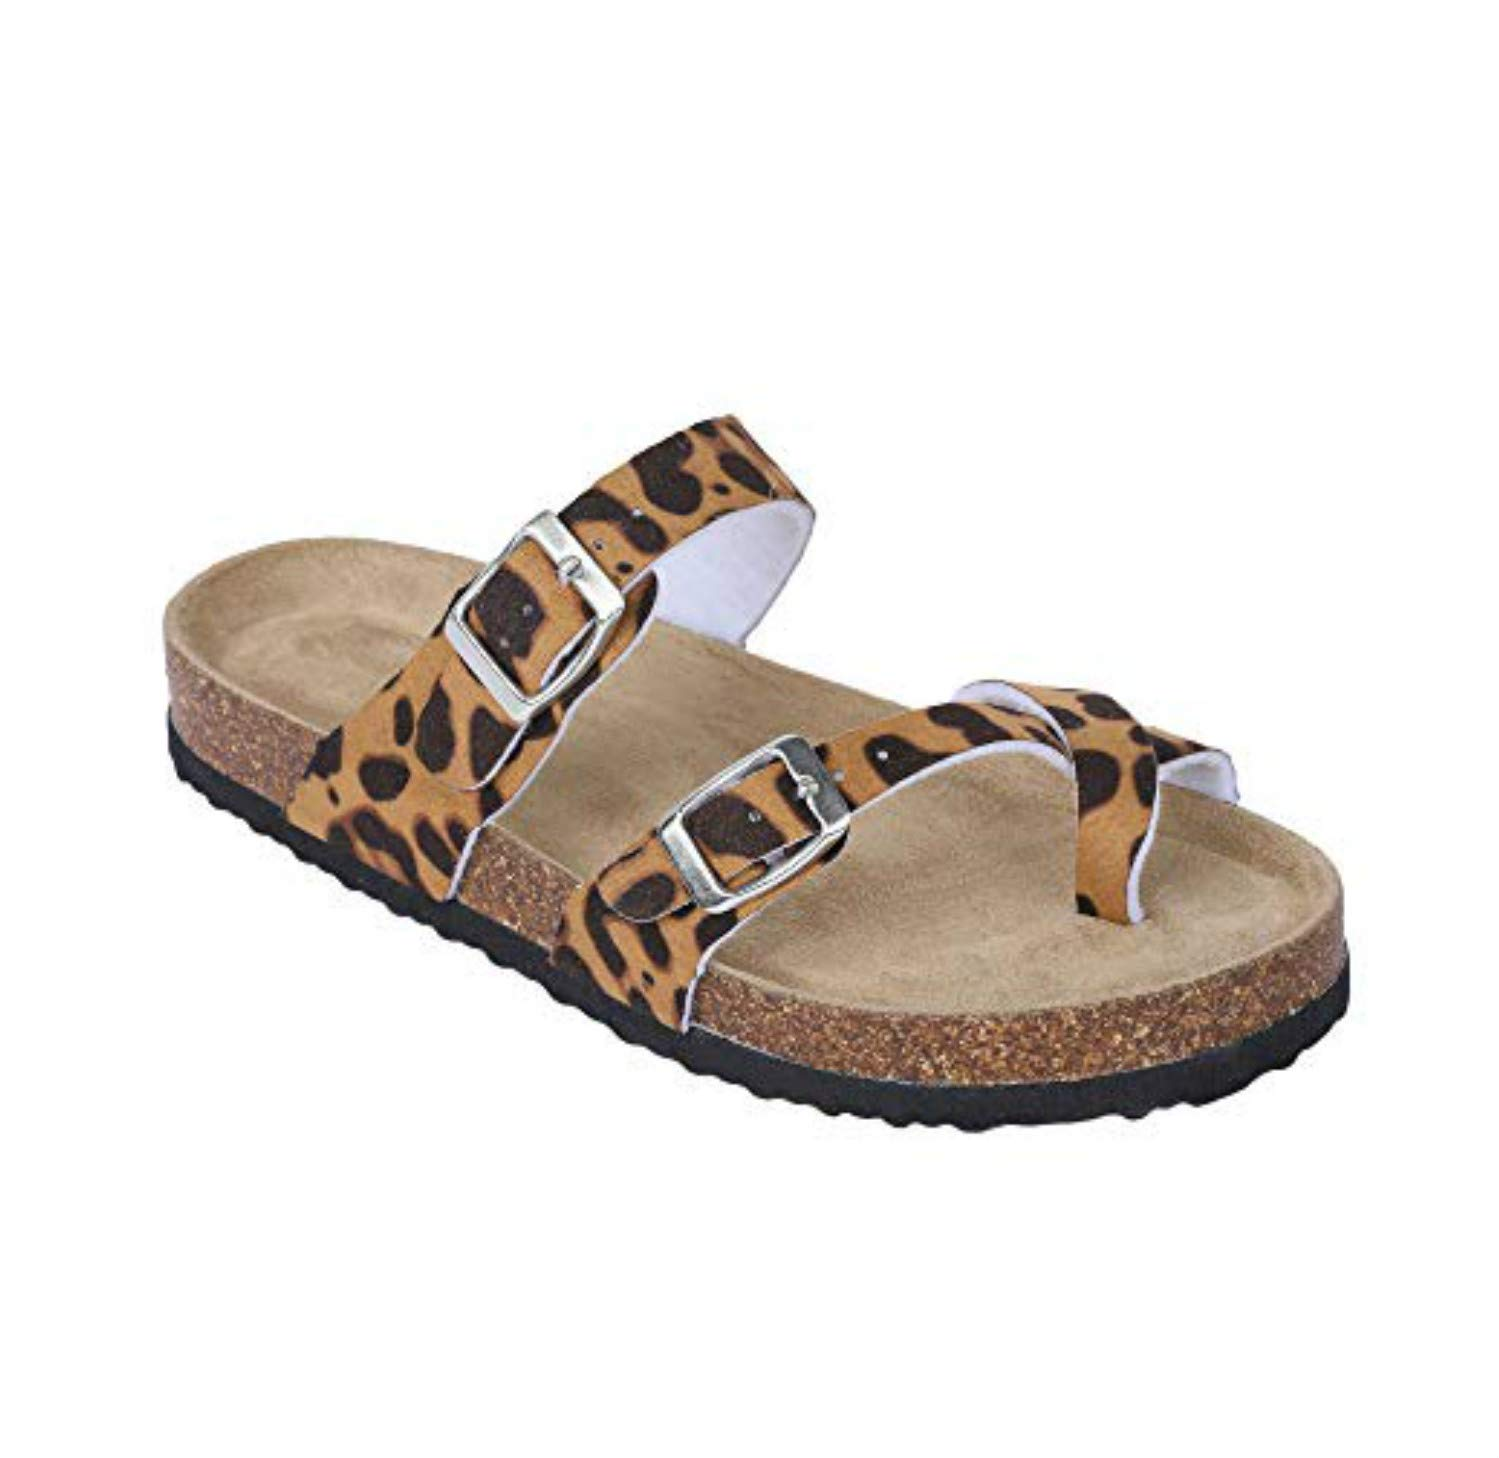 Liyuandian Womens Cross Toe Fashion Flat Ankle Buckle Thong Flip Flop Strappy Summer Sandals